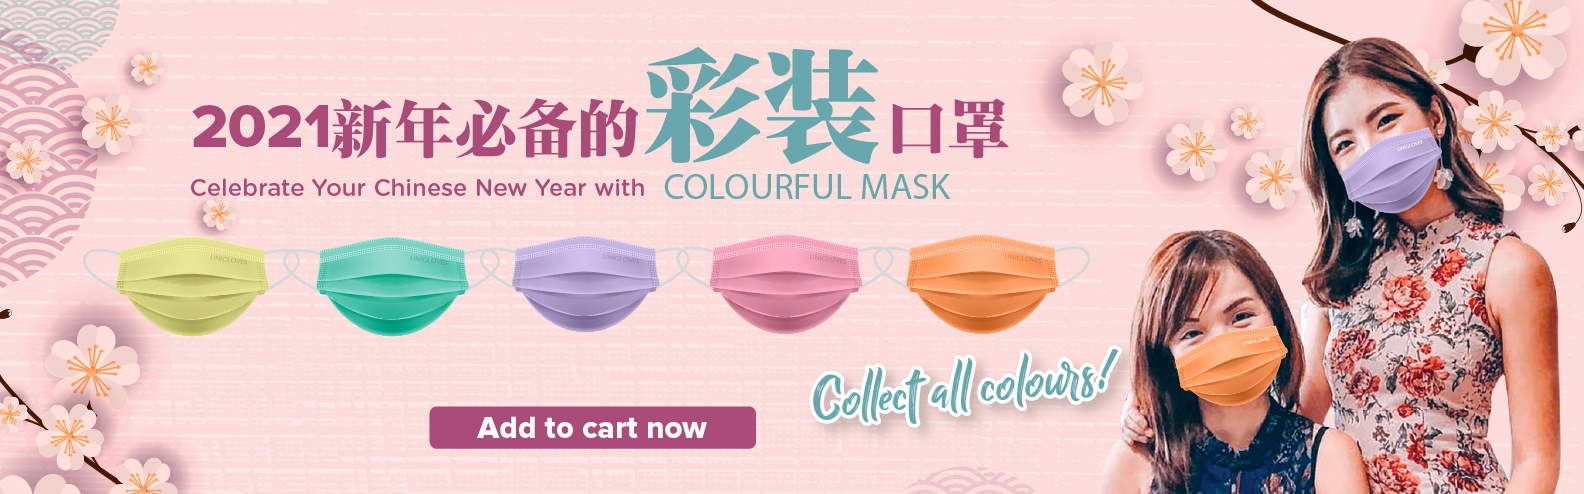 https://www.alpropharmacy.com/oneclick/product/unigloves-profil-3-ply-ear-loop-face-mask-50s/